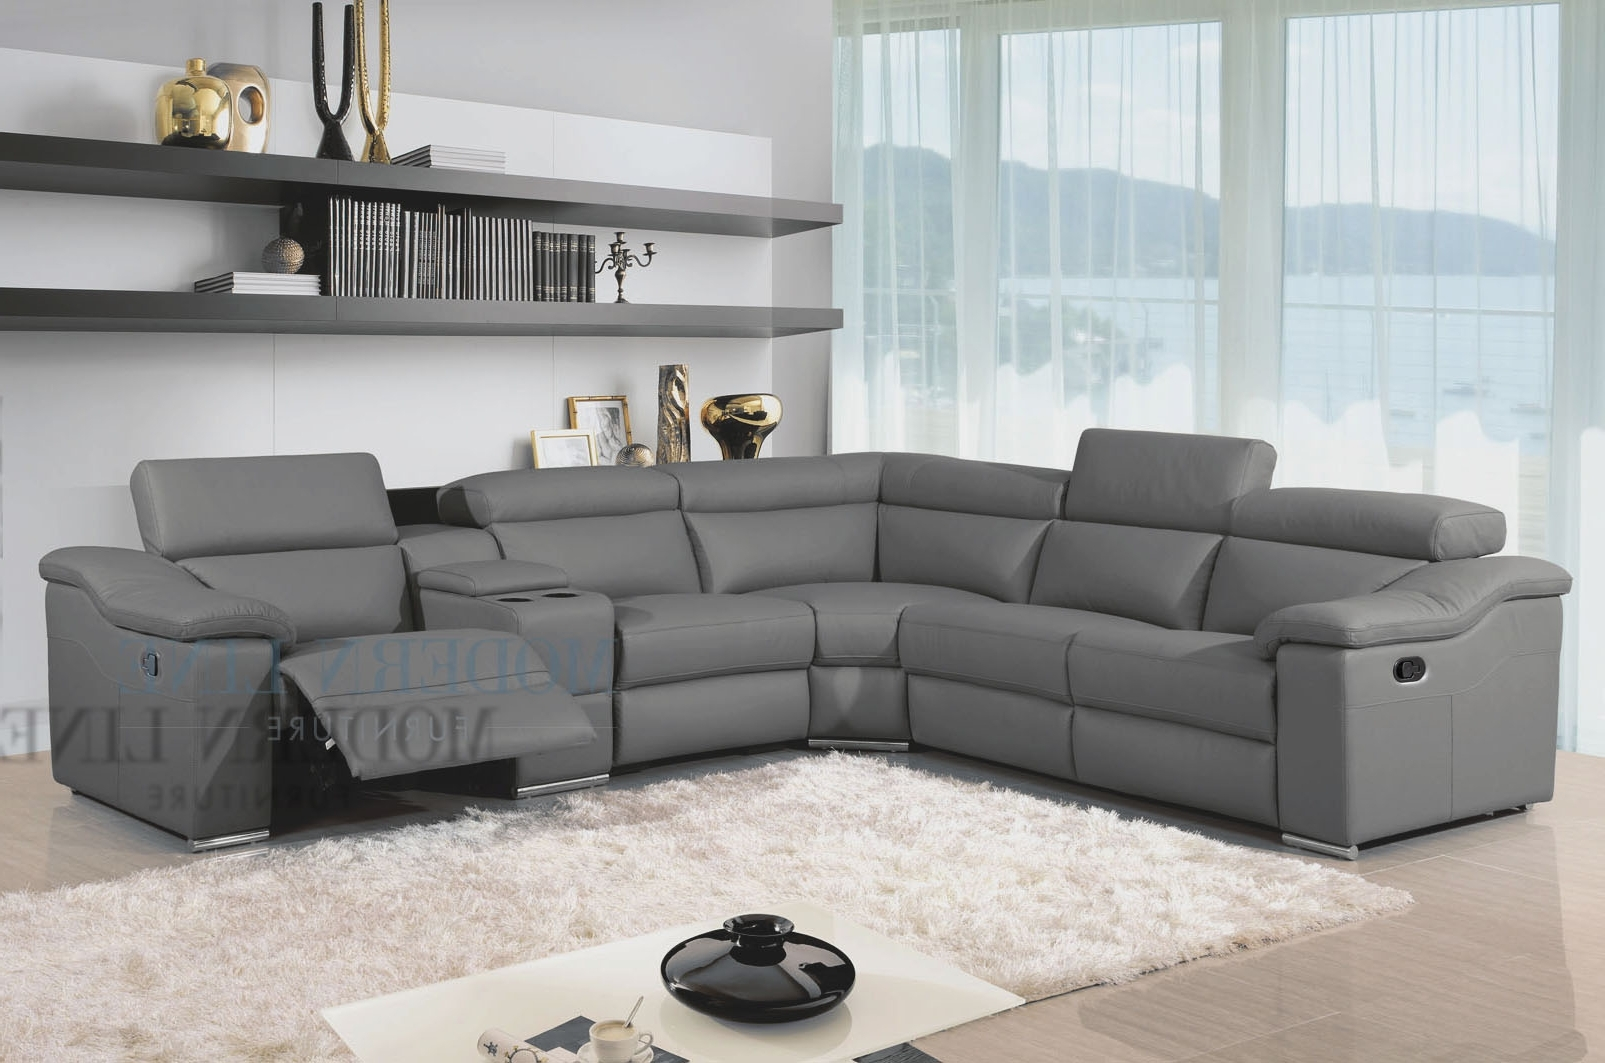 Modern Reclining Sectional Sofas – Cleanupflorida Throughout Most Up To Date Vancouver Bc Sectional Sofas (View 7 of 20)